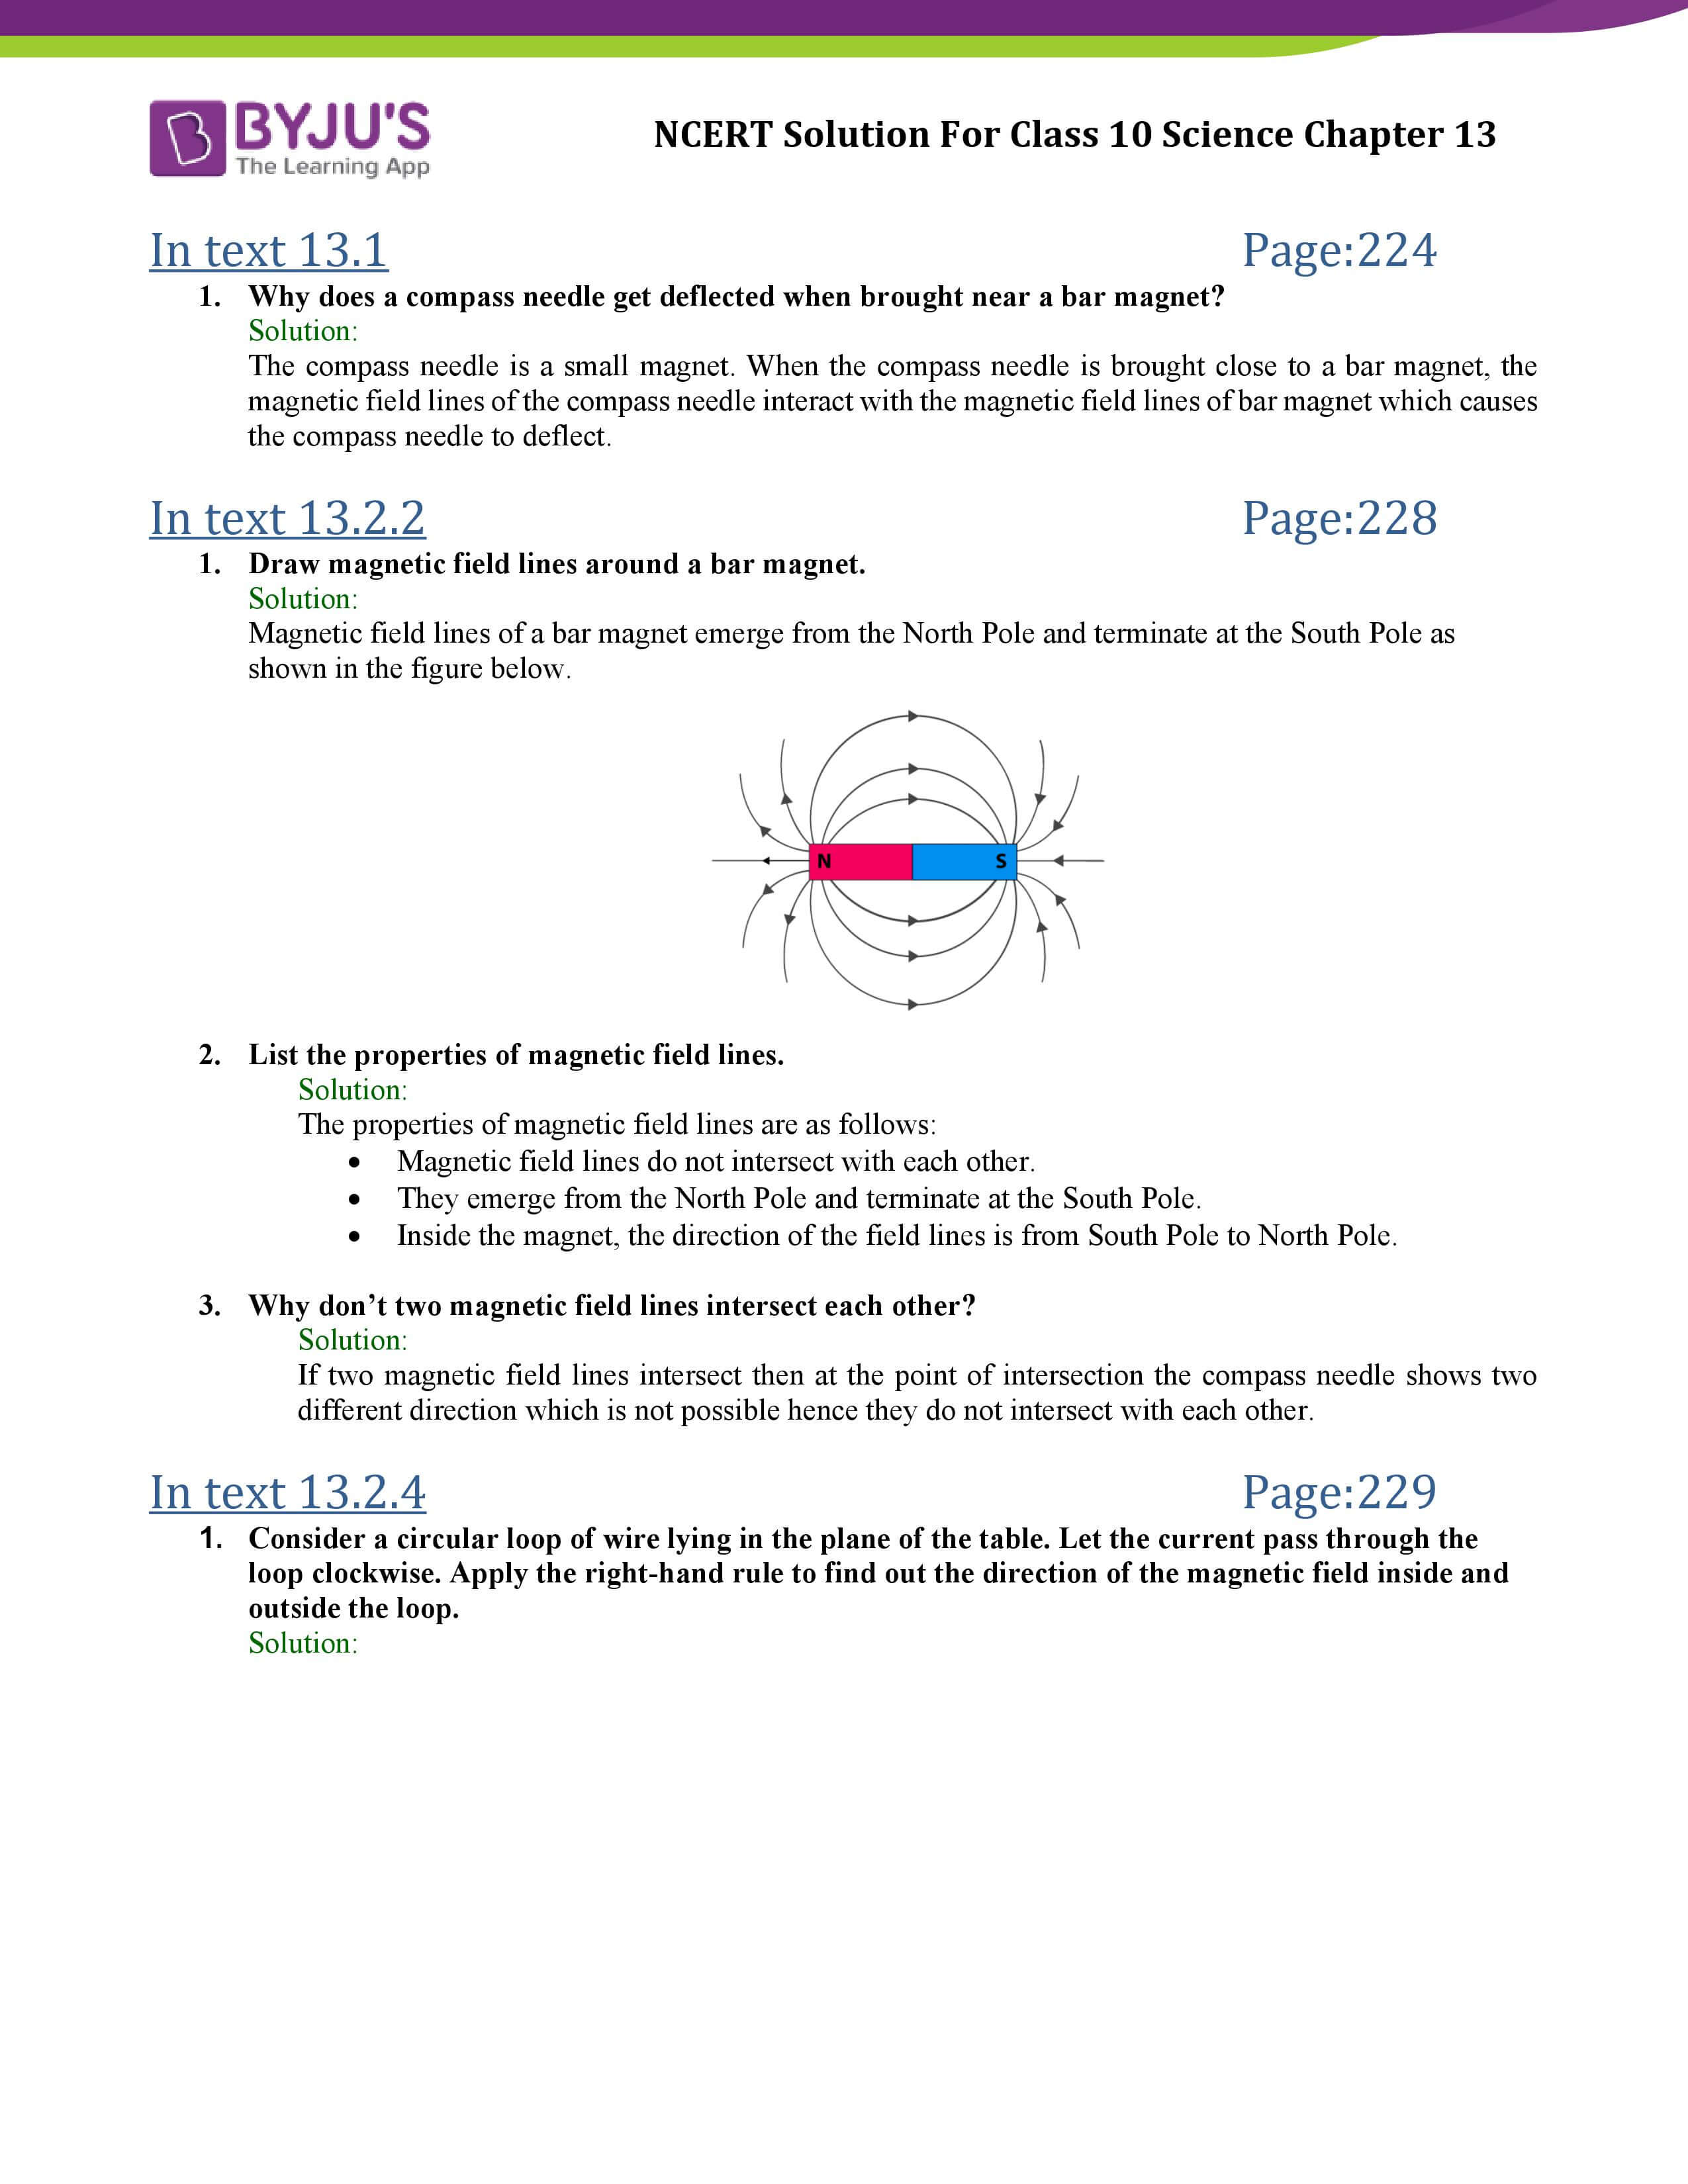 NCERT Solutions Class 10 Science Chapter 13 Magnetic Effects of